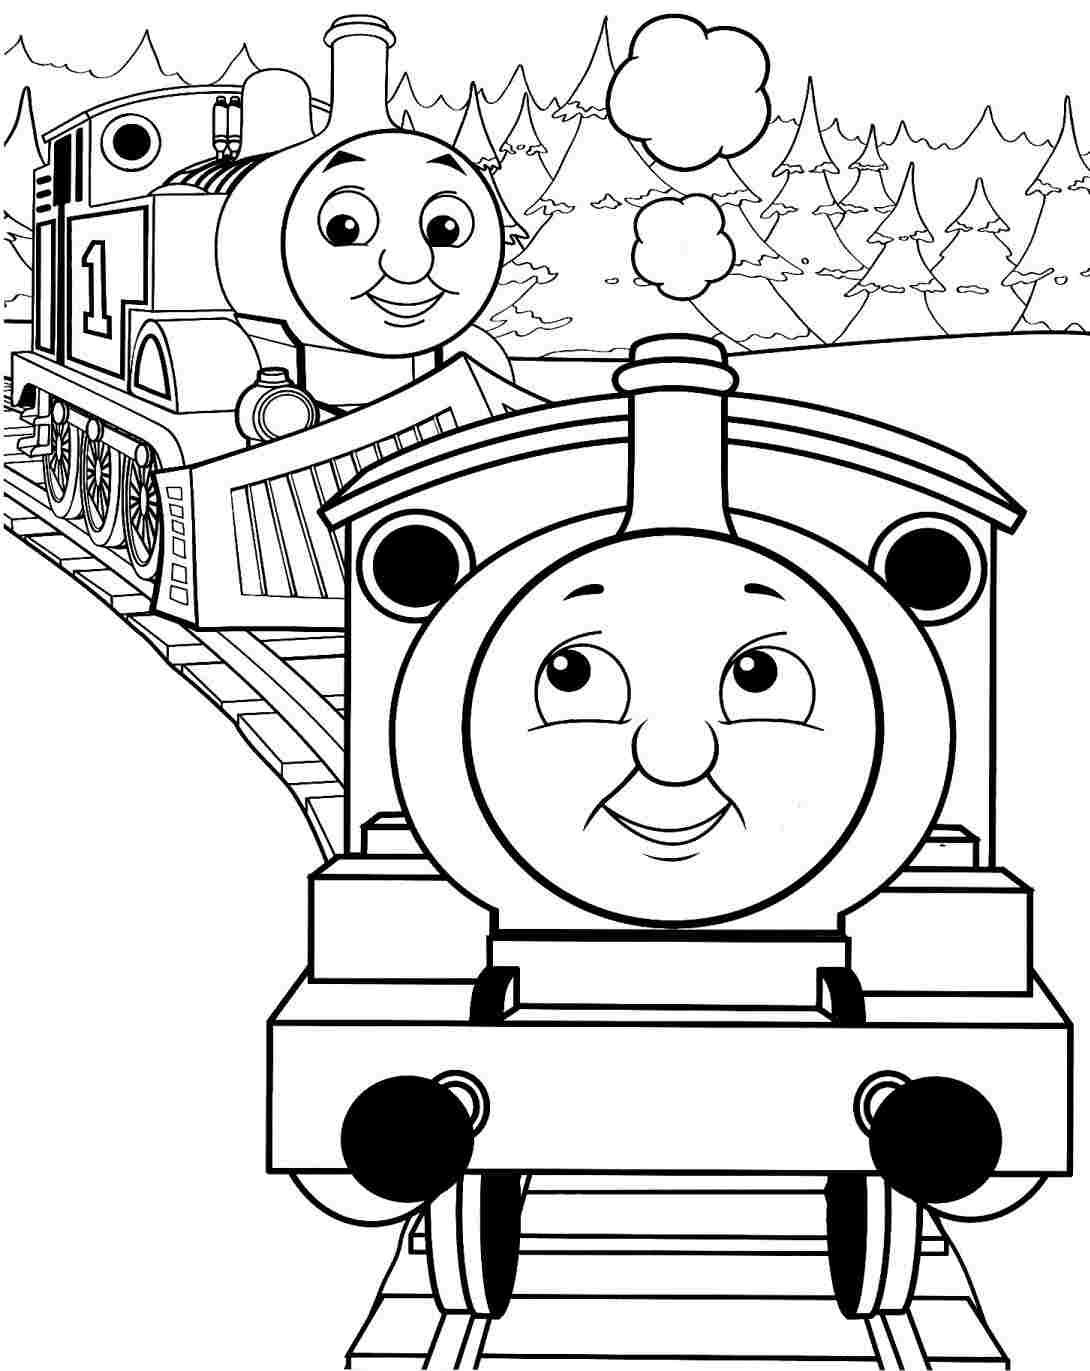 Printable coloring pages thomas the train - Thomas The Train Coloring Pages Google Search Thomas The Train